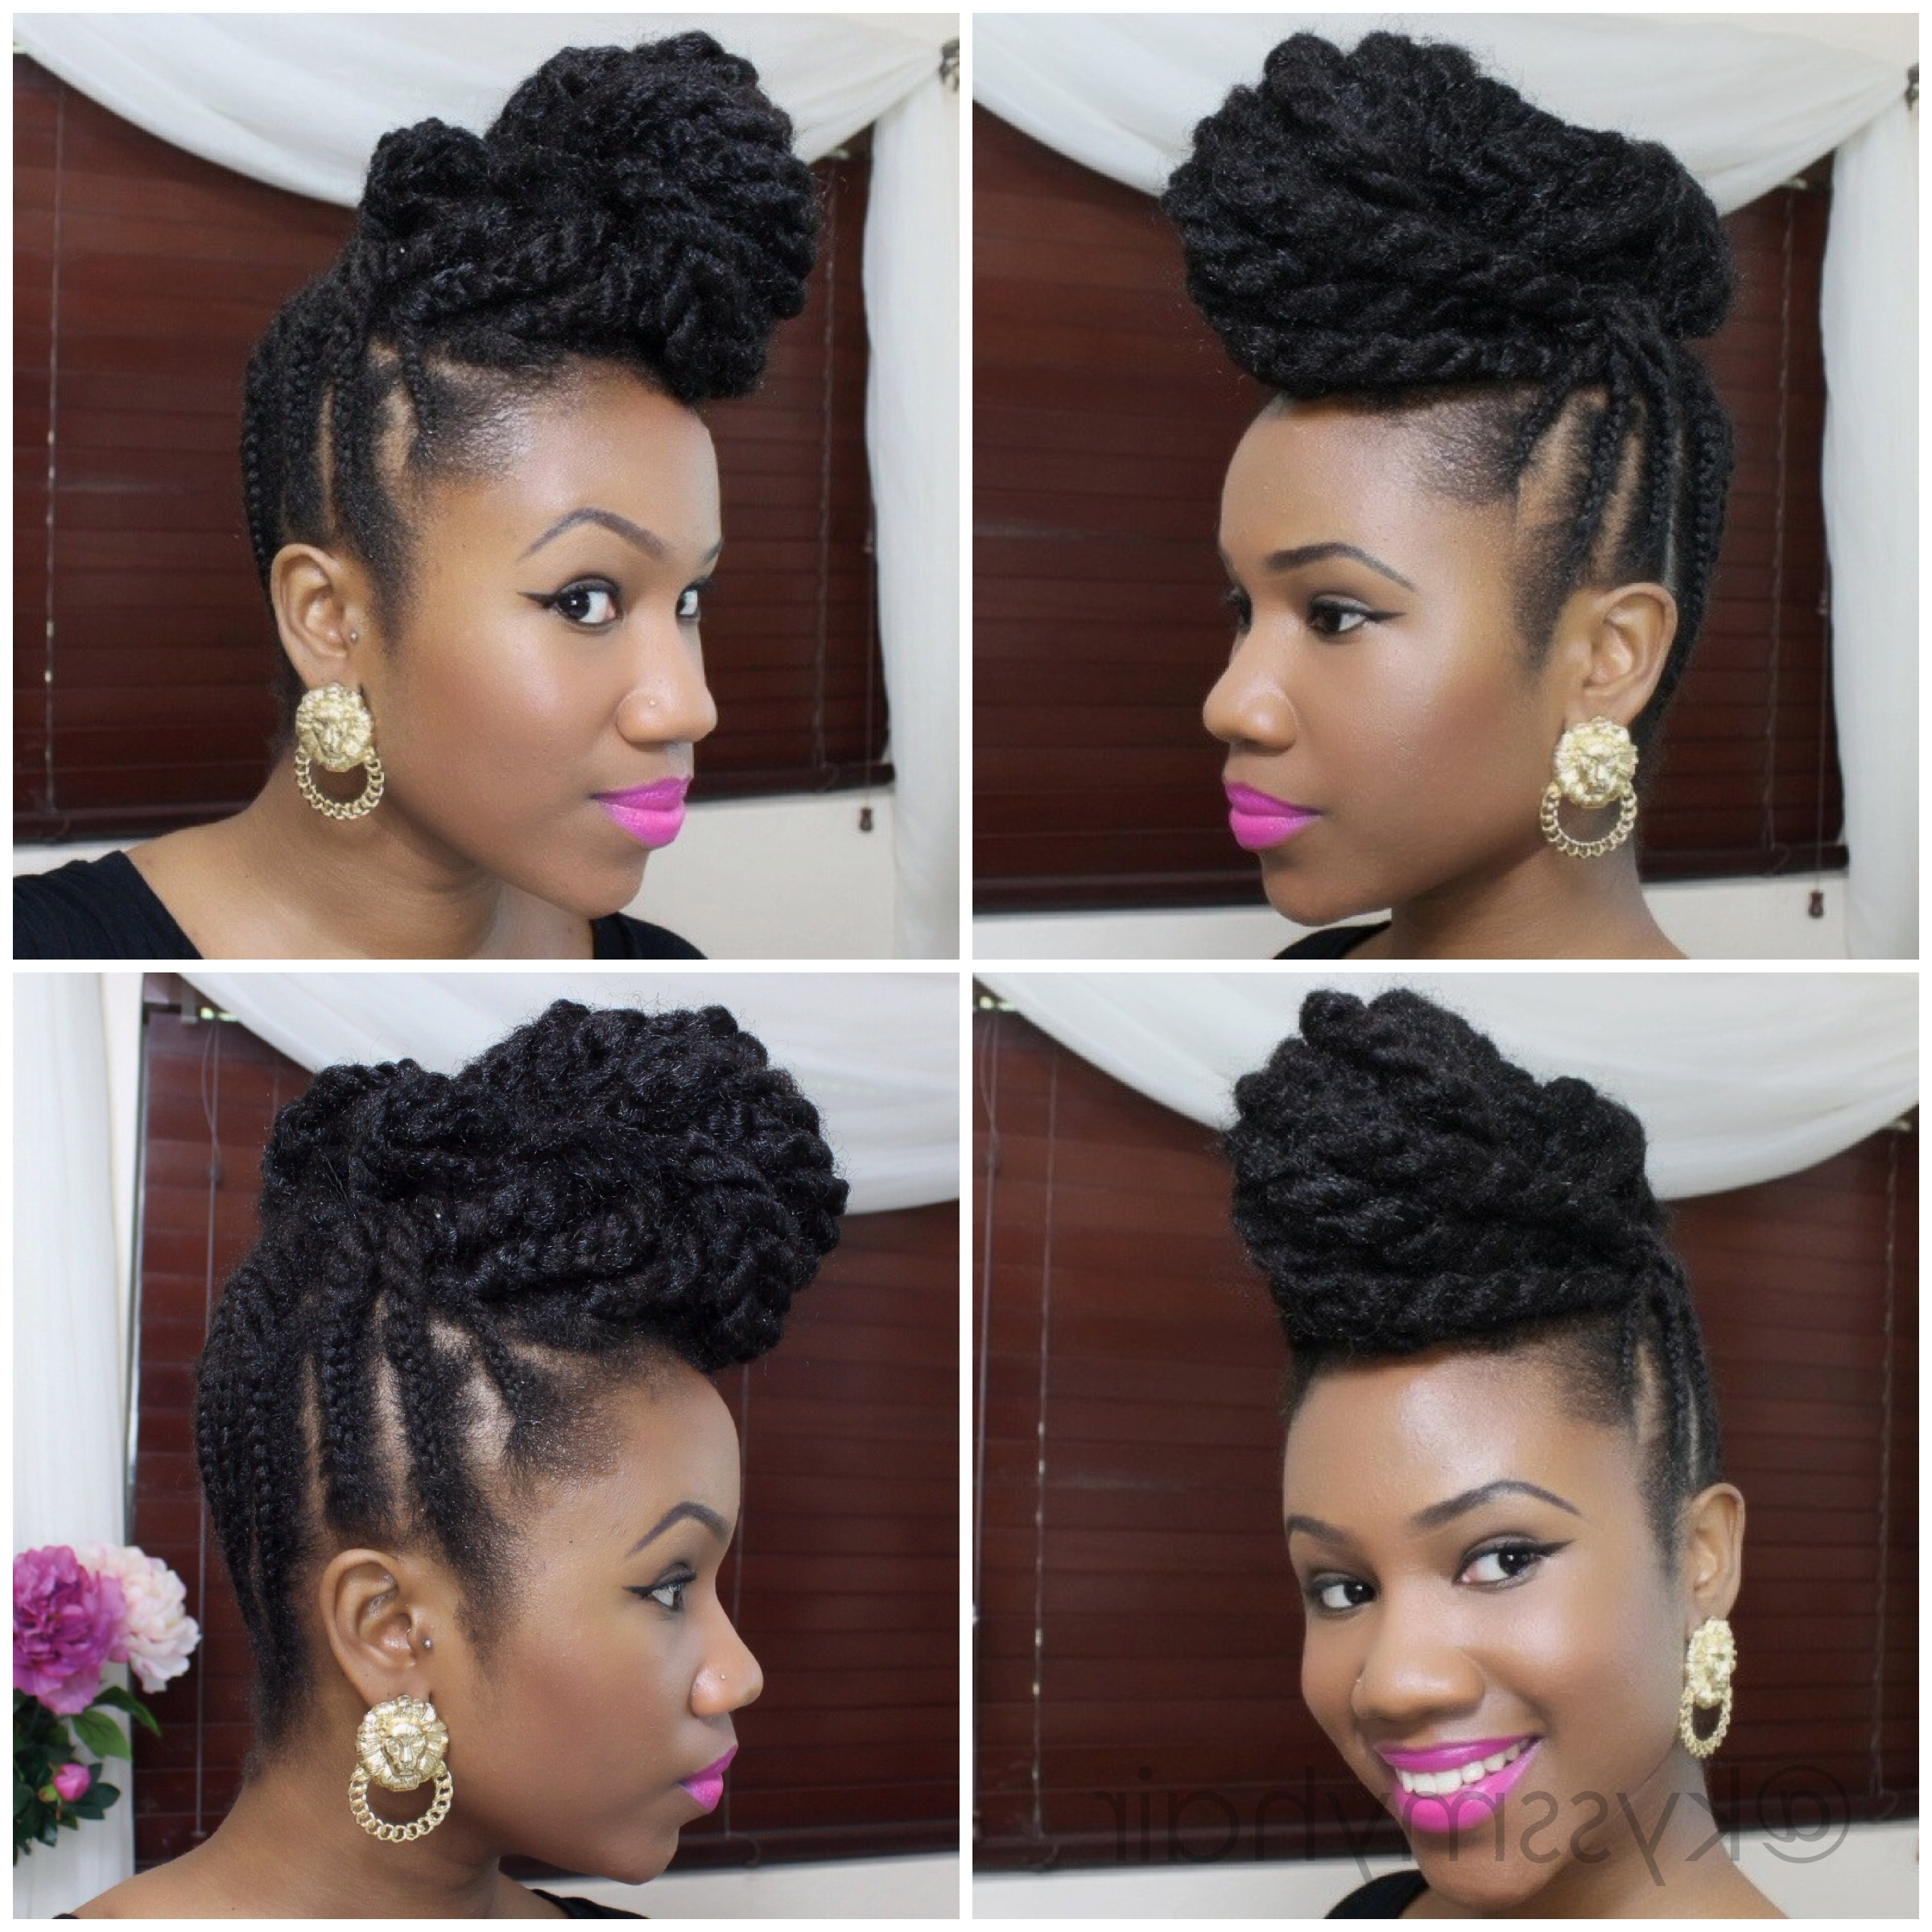 Braided Updo On Natural Hair Using Marley Hair | Kyss My Hair | Kyss Within Black Natural Hair Updo Hairstyles (View 2 of 15)